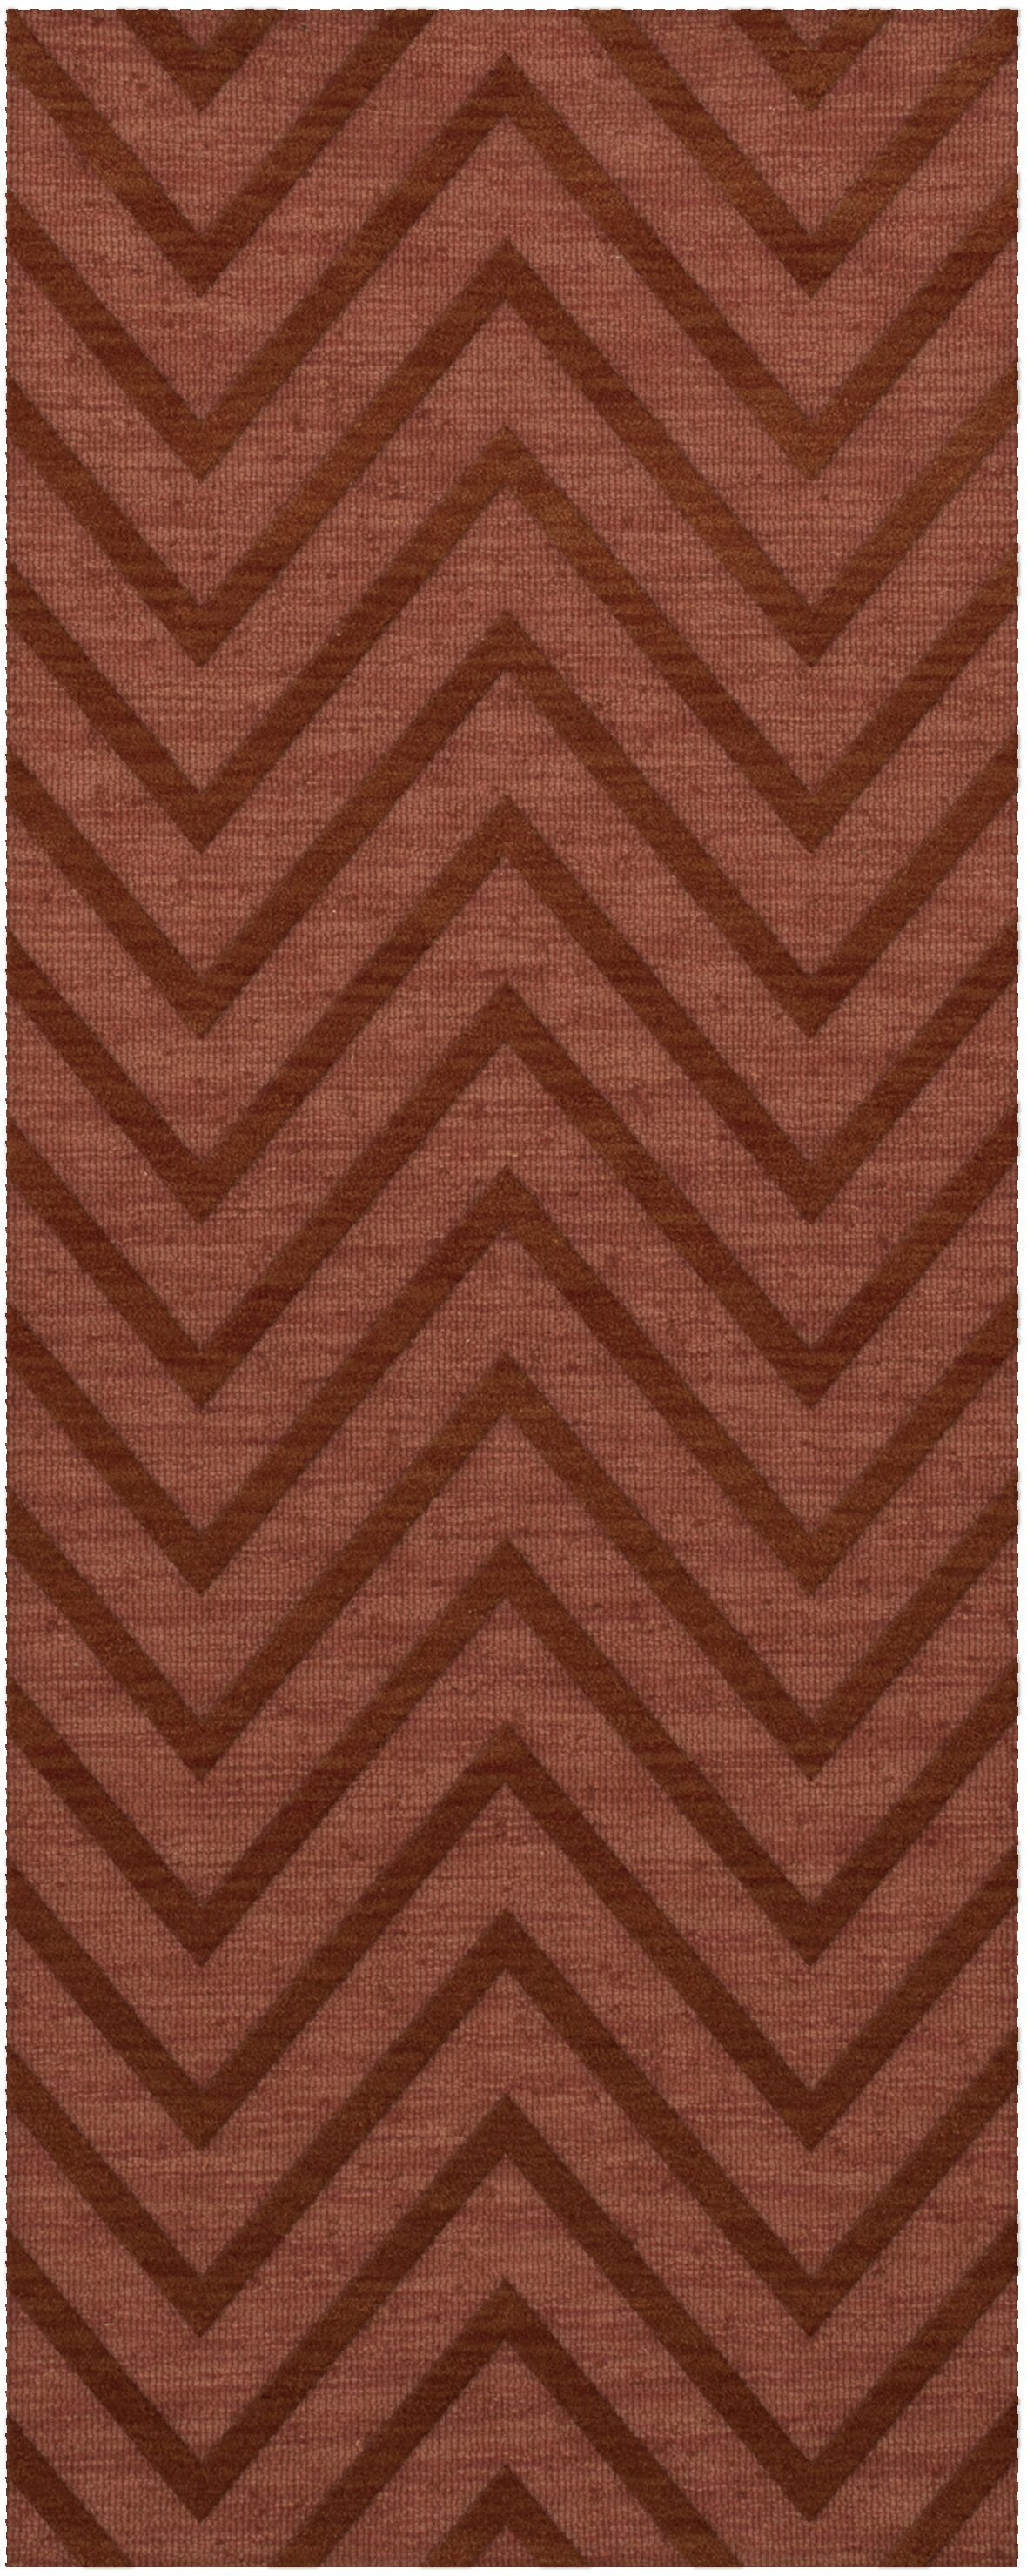 Dover Tufted Wool Coral Area Rug Rug Size: Runner 2'6